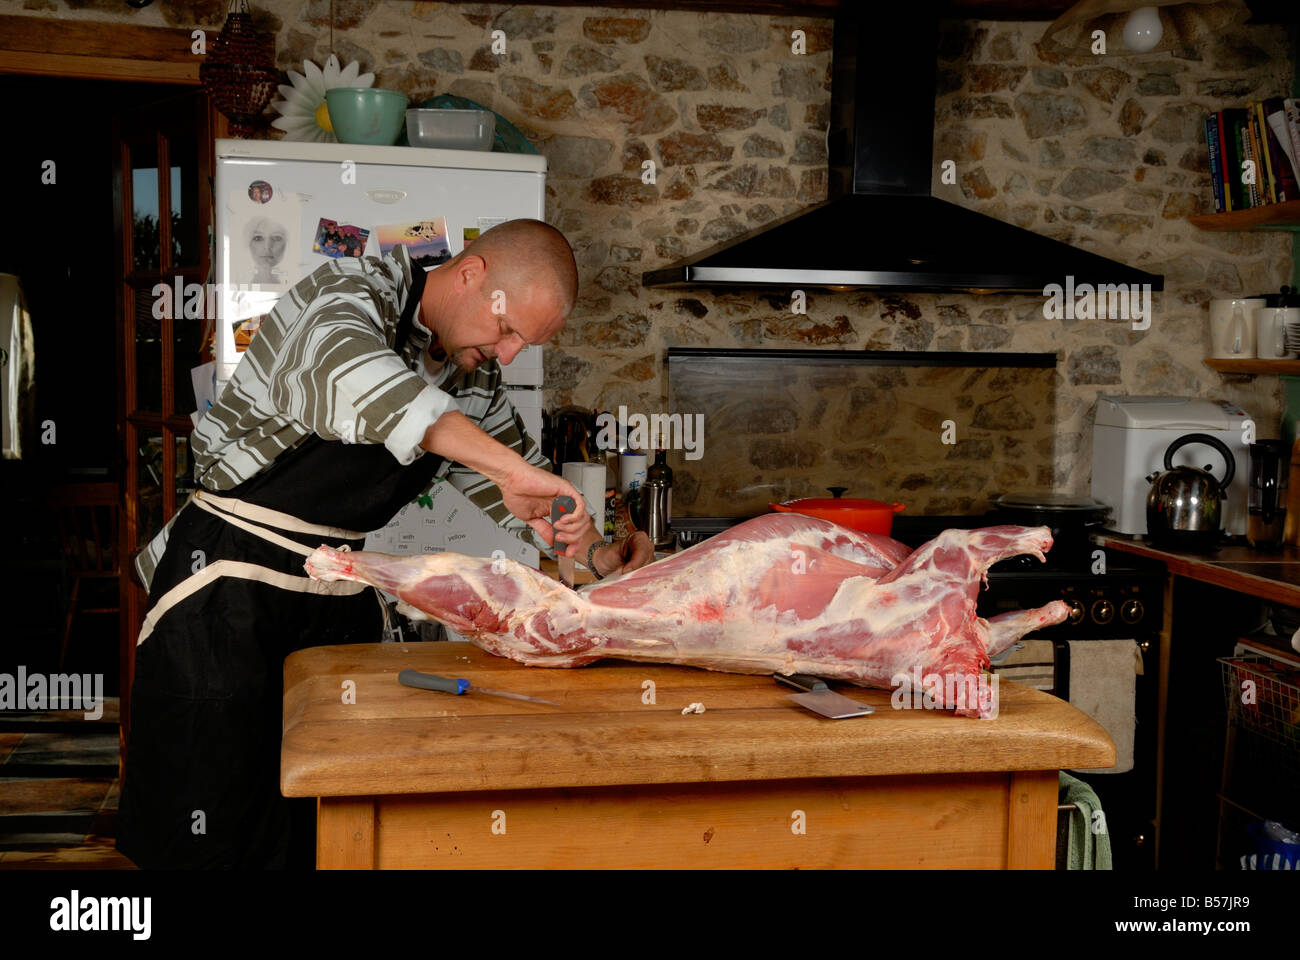 Stock photo of a man butchering a lamb in his Kitchen on a wooden table - Stock Image